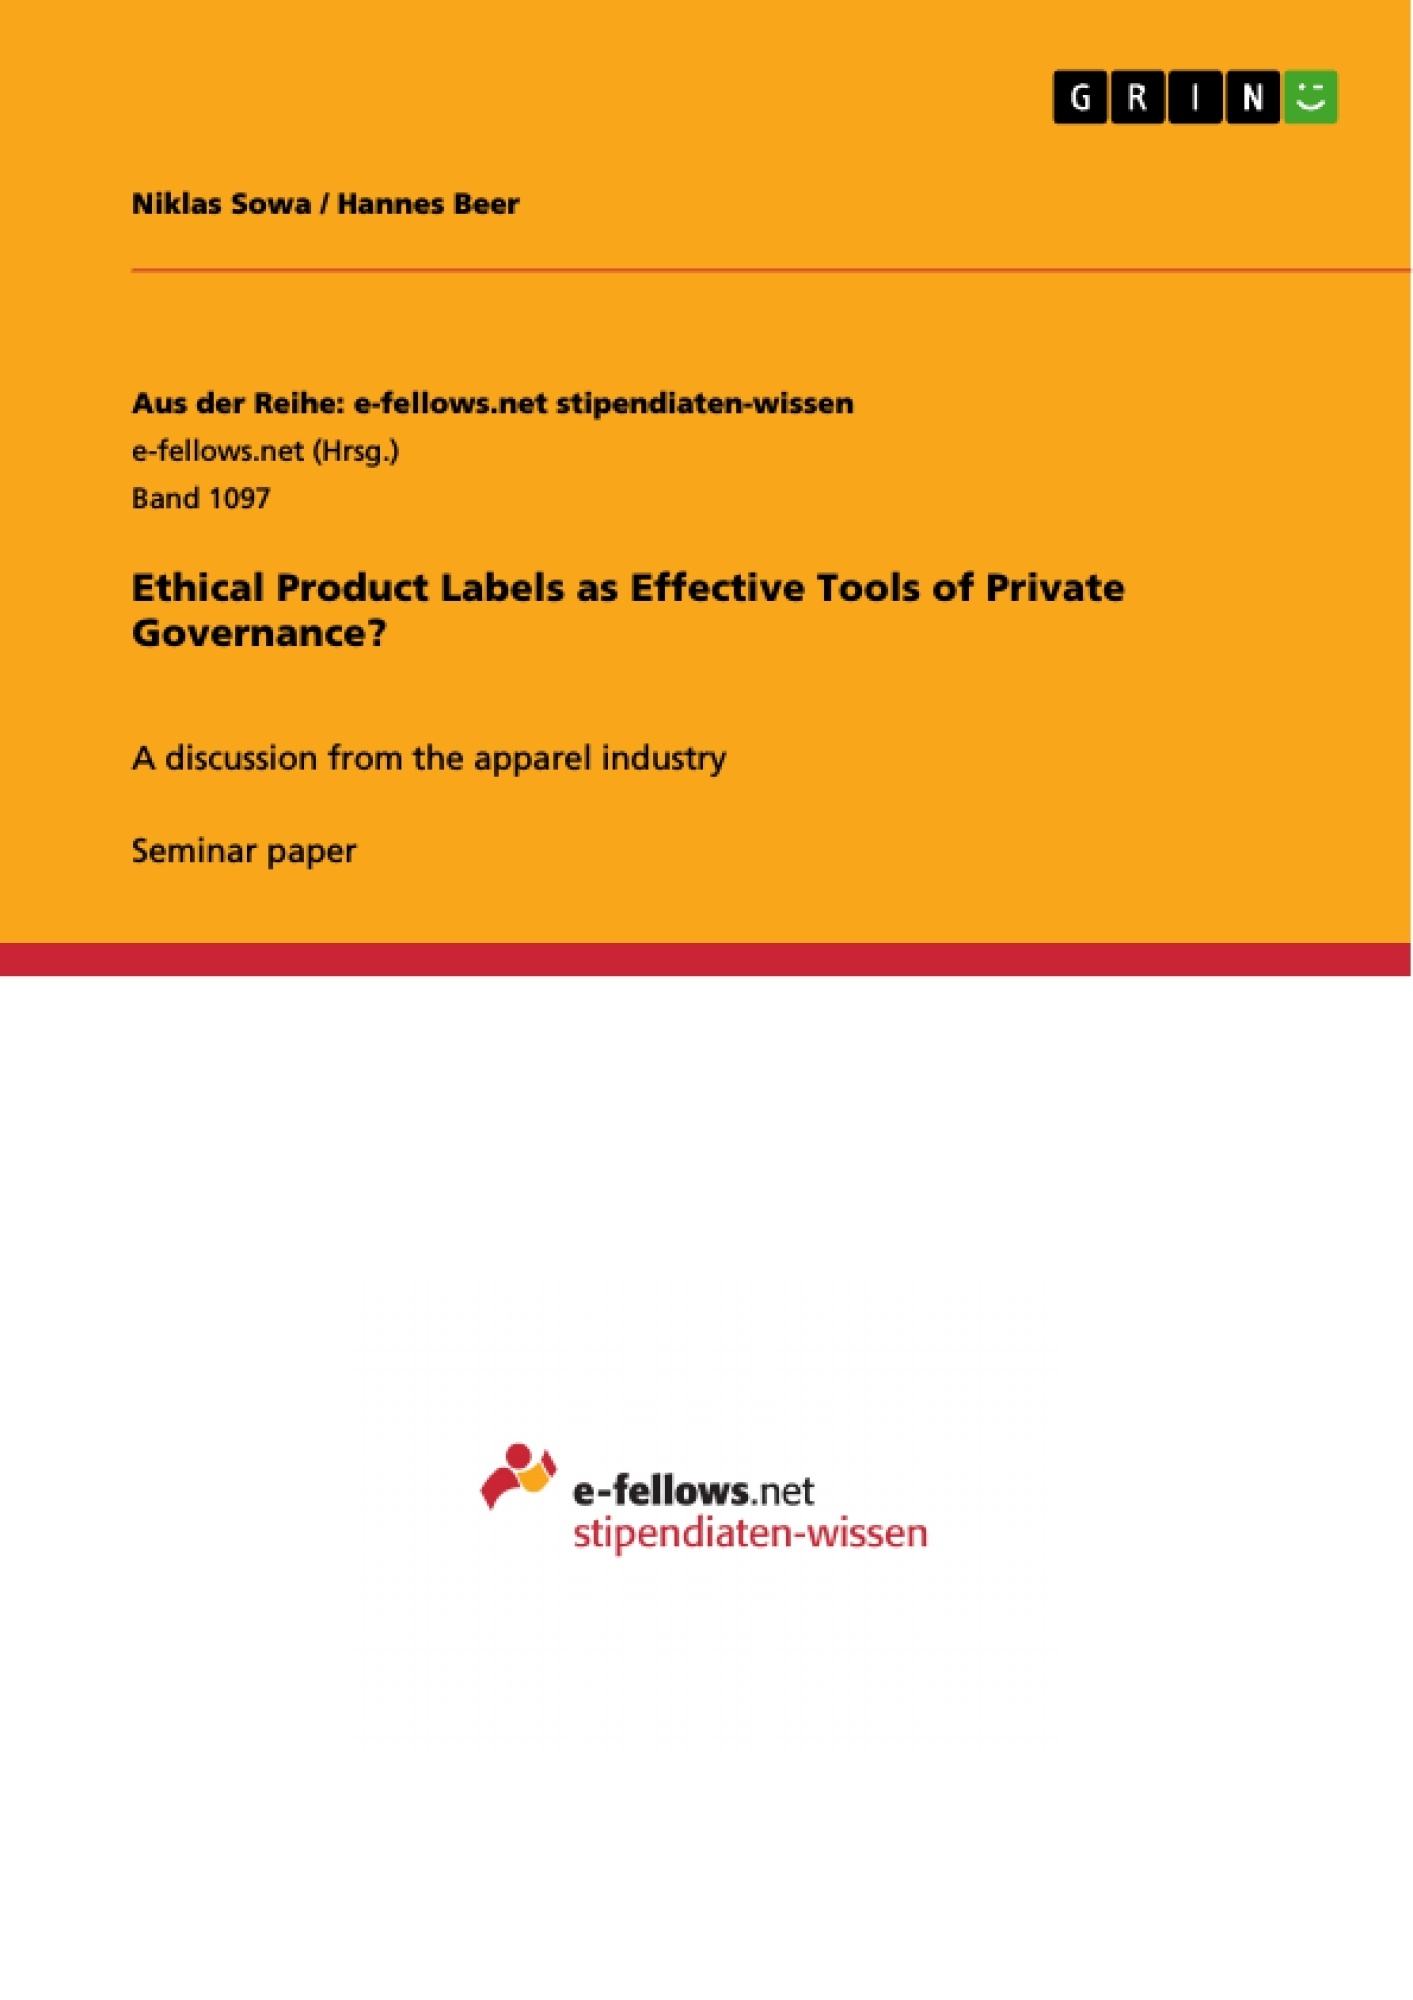 Title: Ethical Product Labels as Effective Tools of Private Governance?